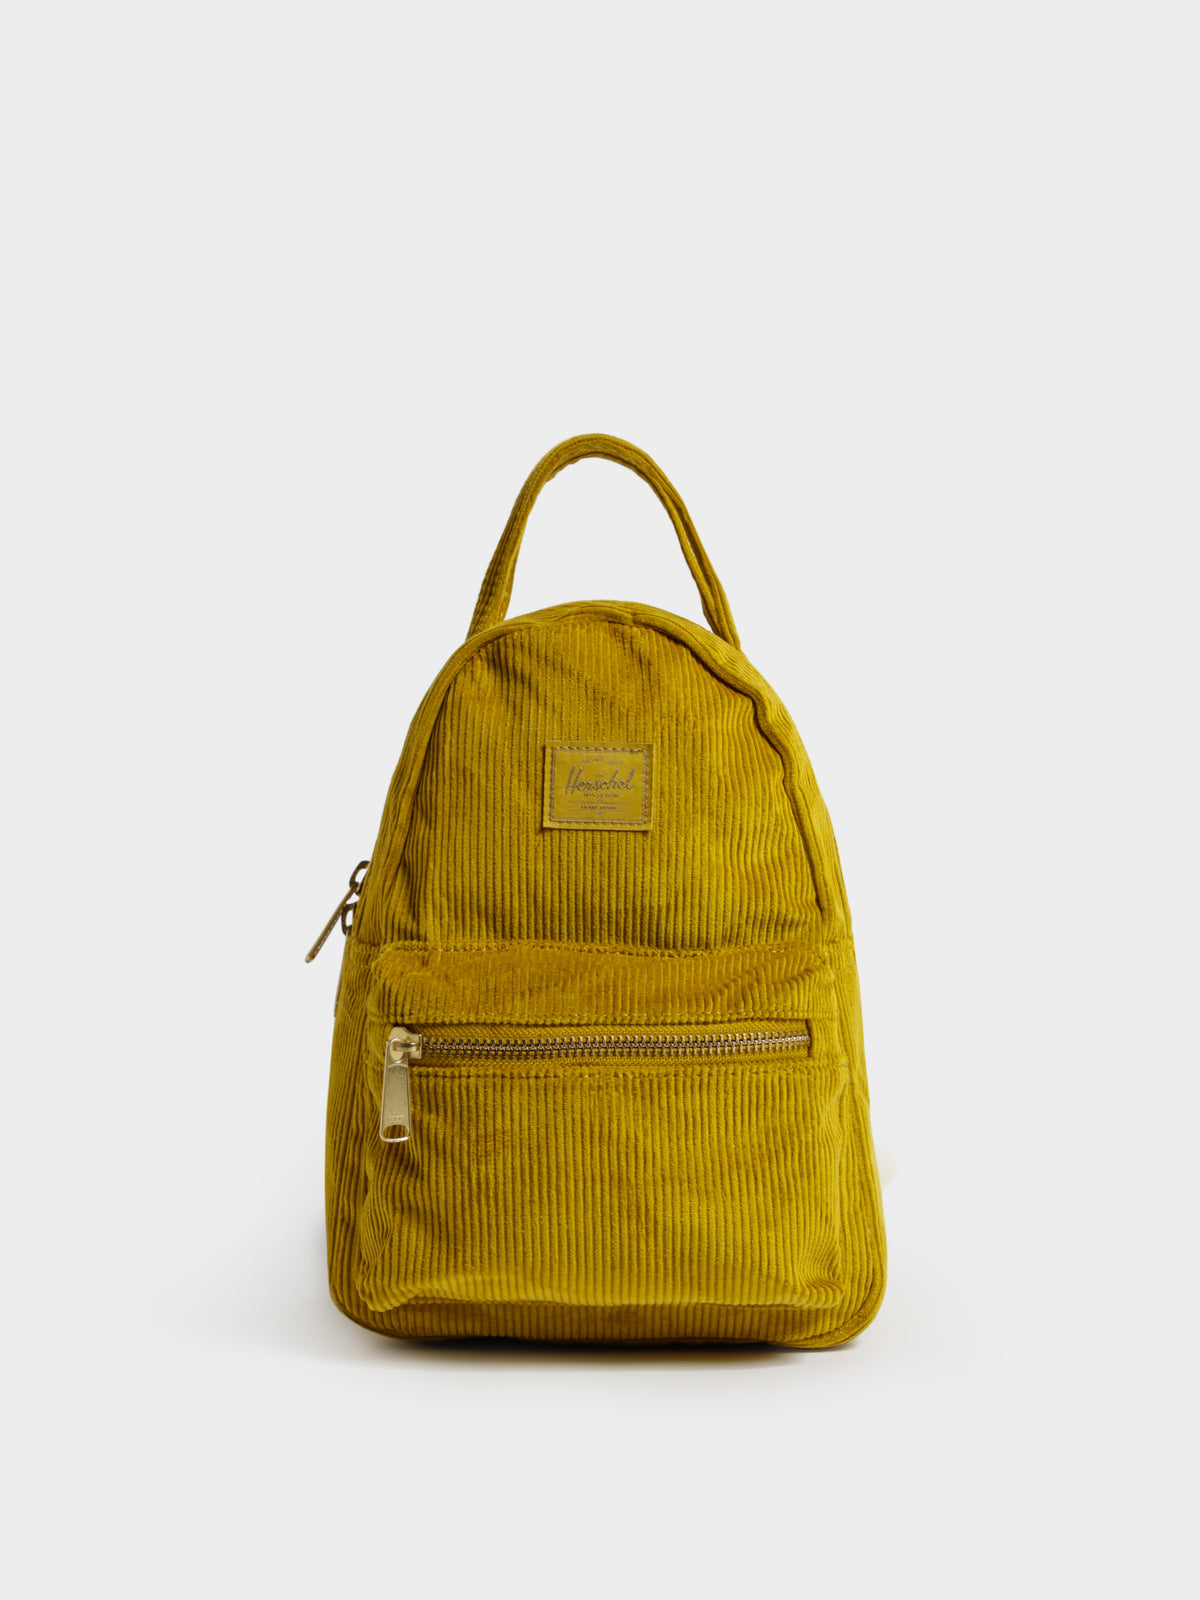 Nova Small Backpack in Mustard Corduroy